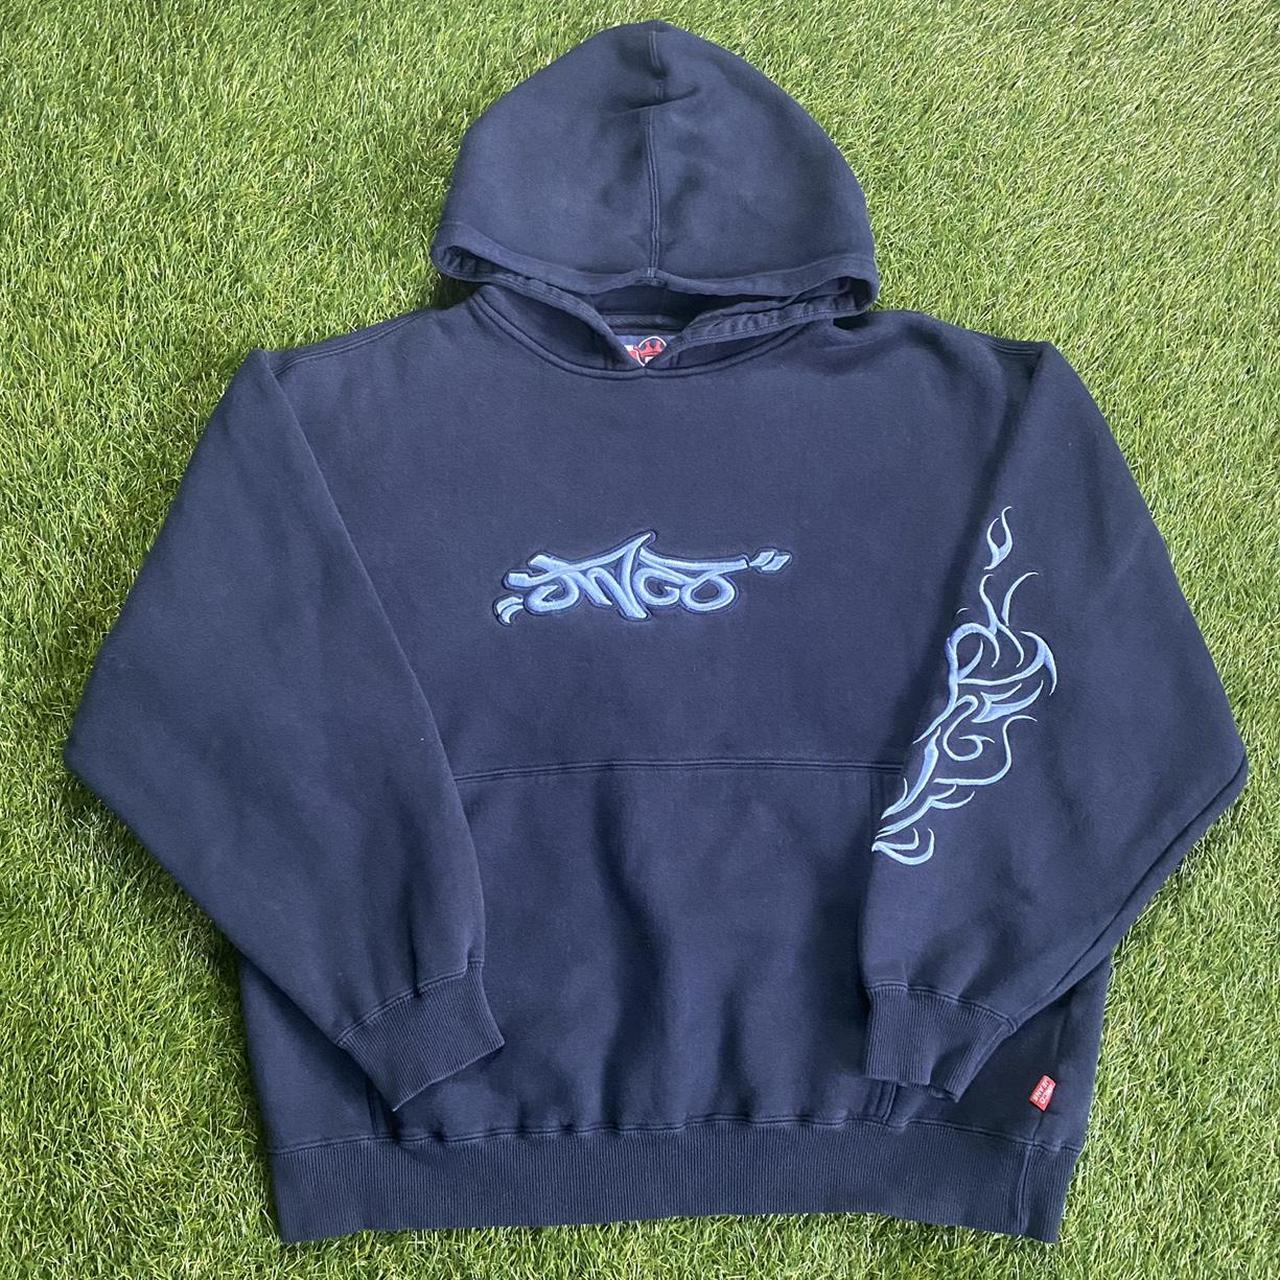 Product Image 1 - Vintage JNCO Jeans Navy Blue